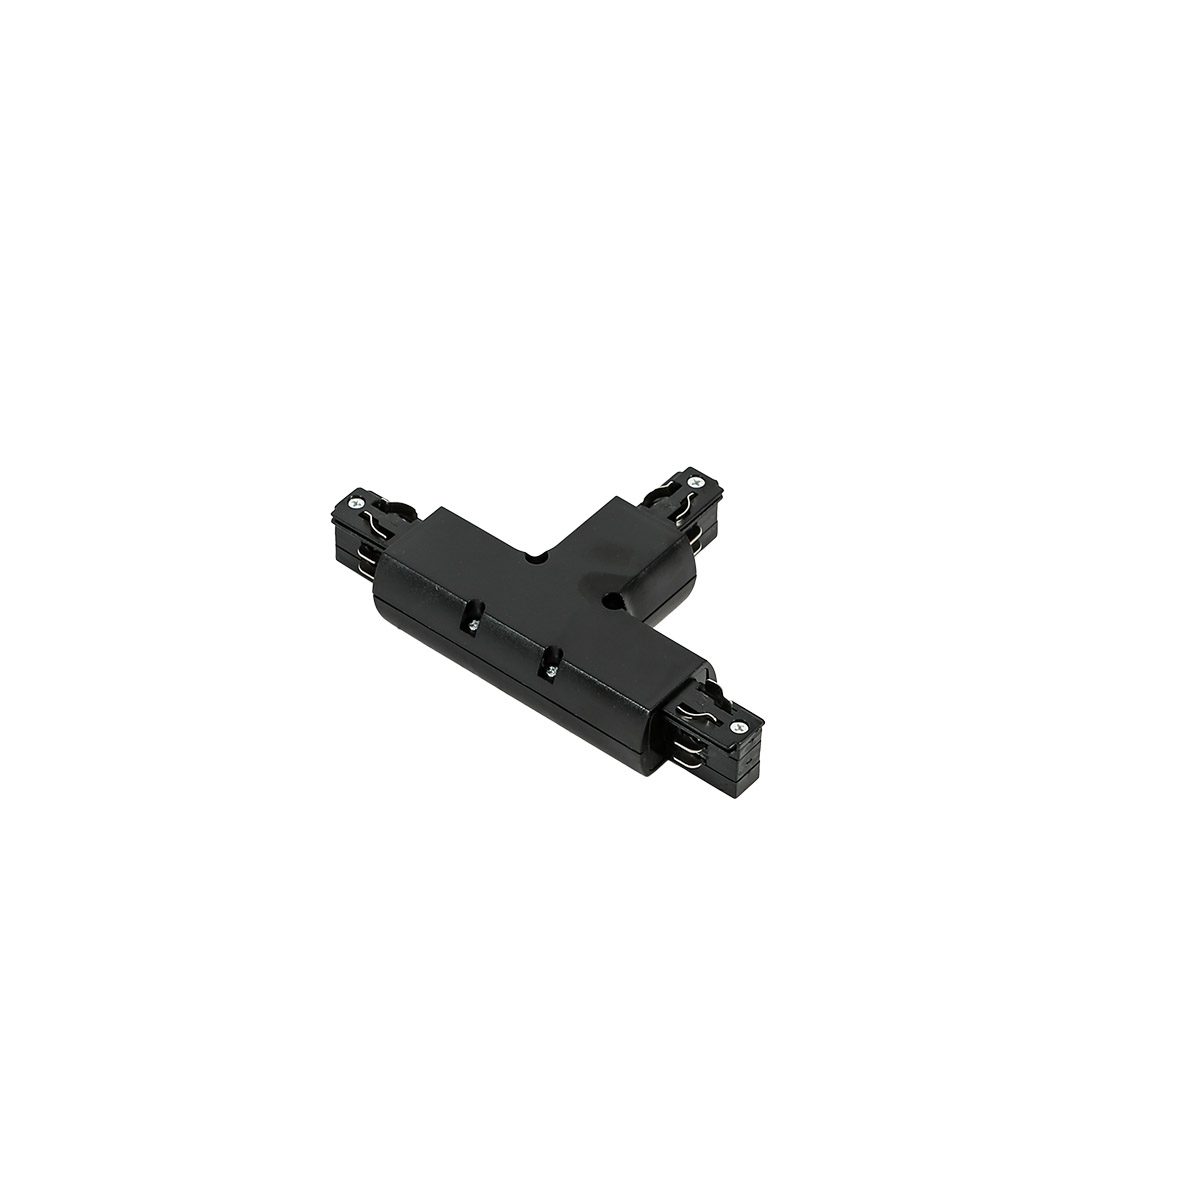 TR-T-JOINT-BL 4 phase track - T joint - black